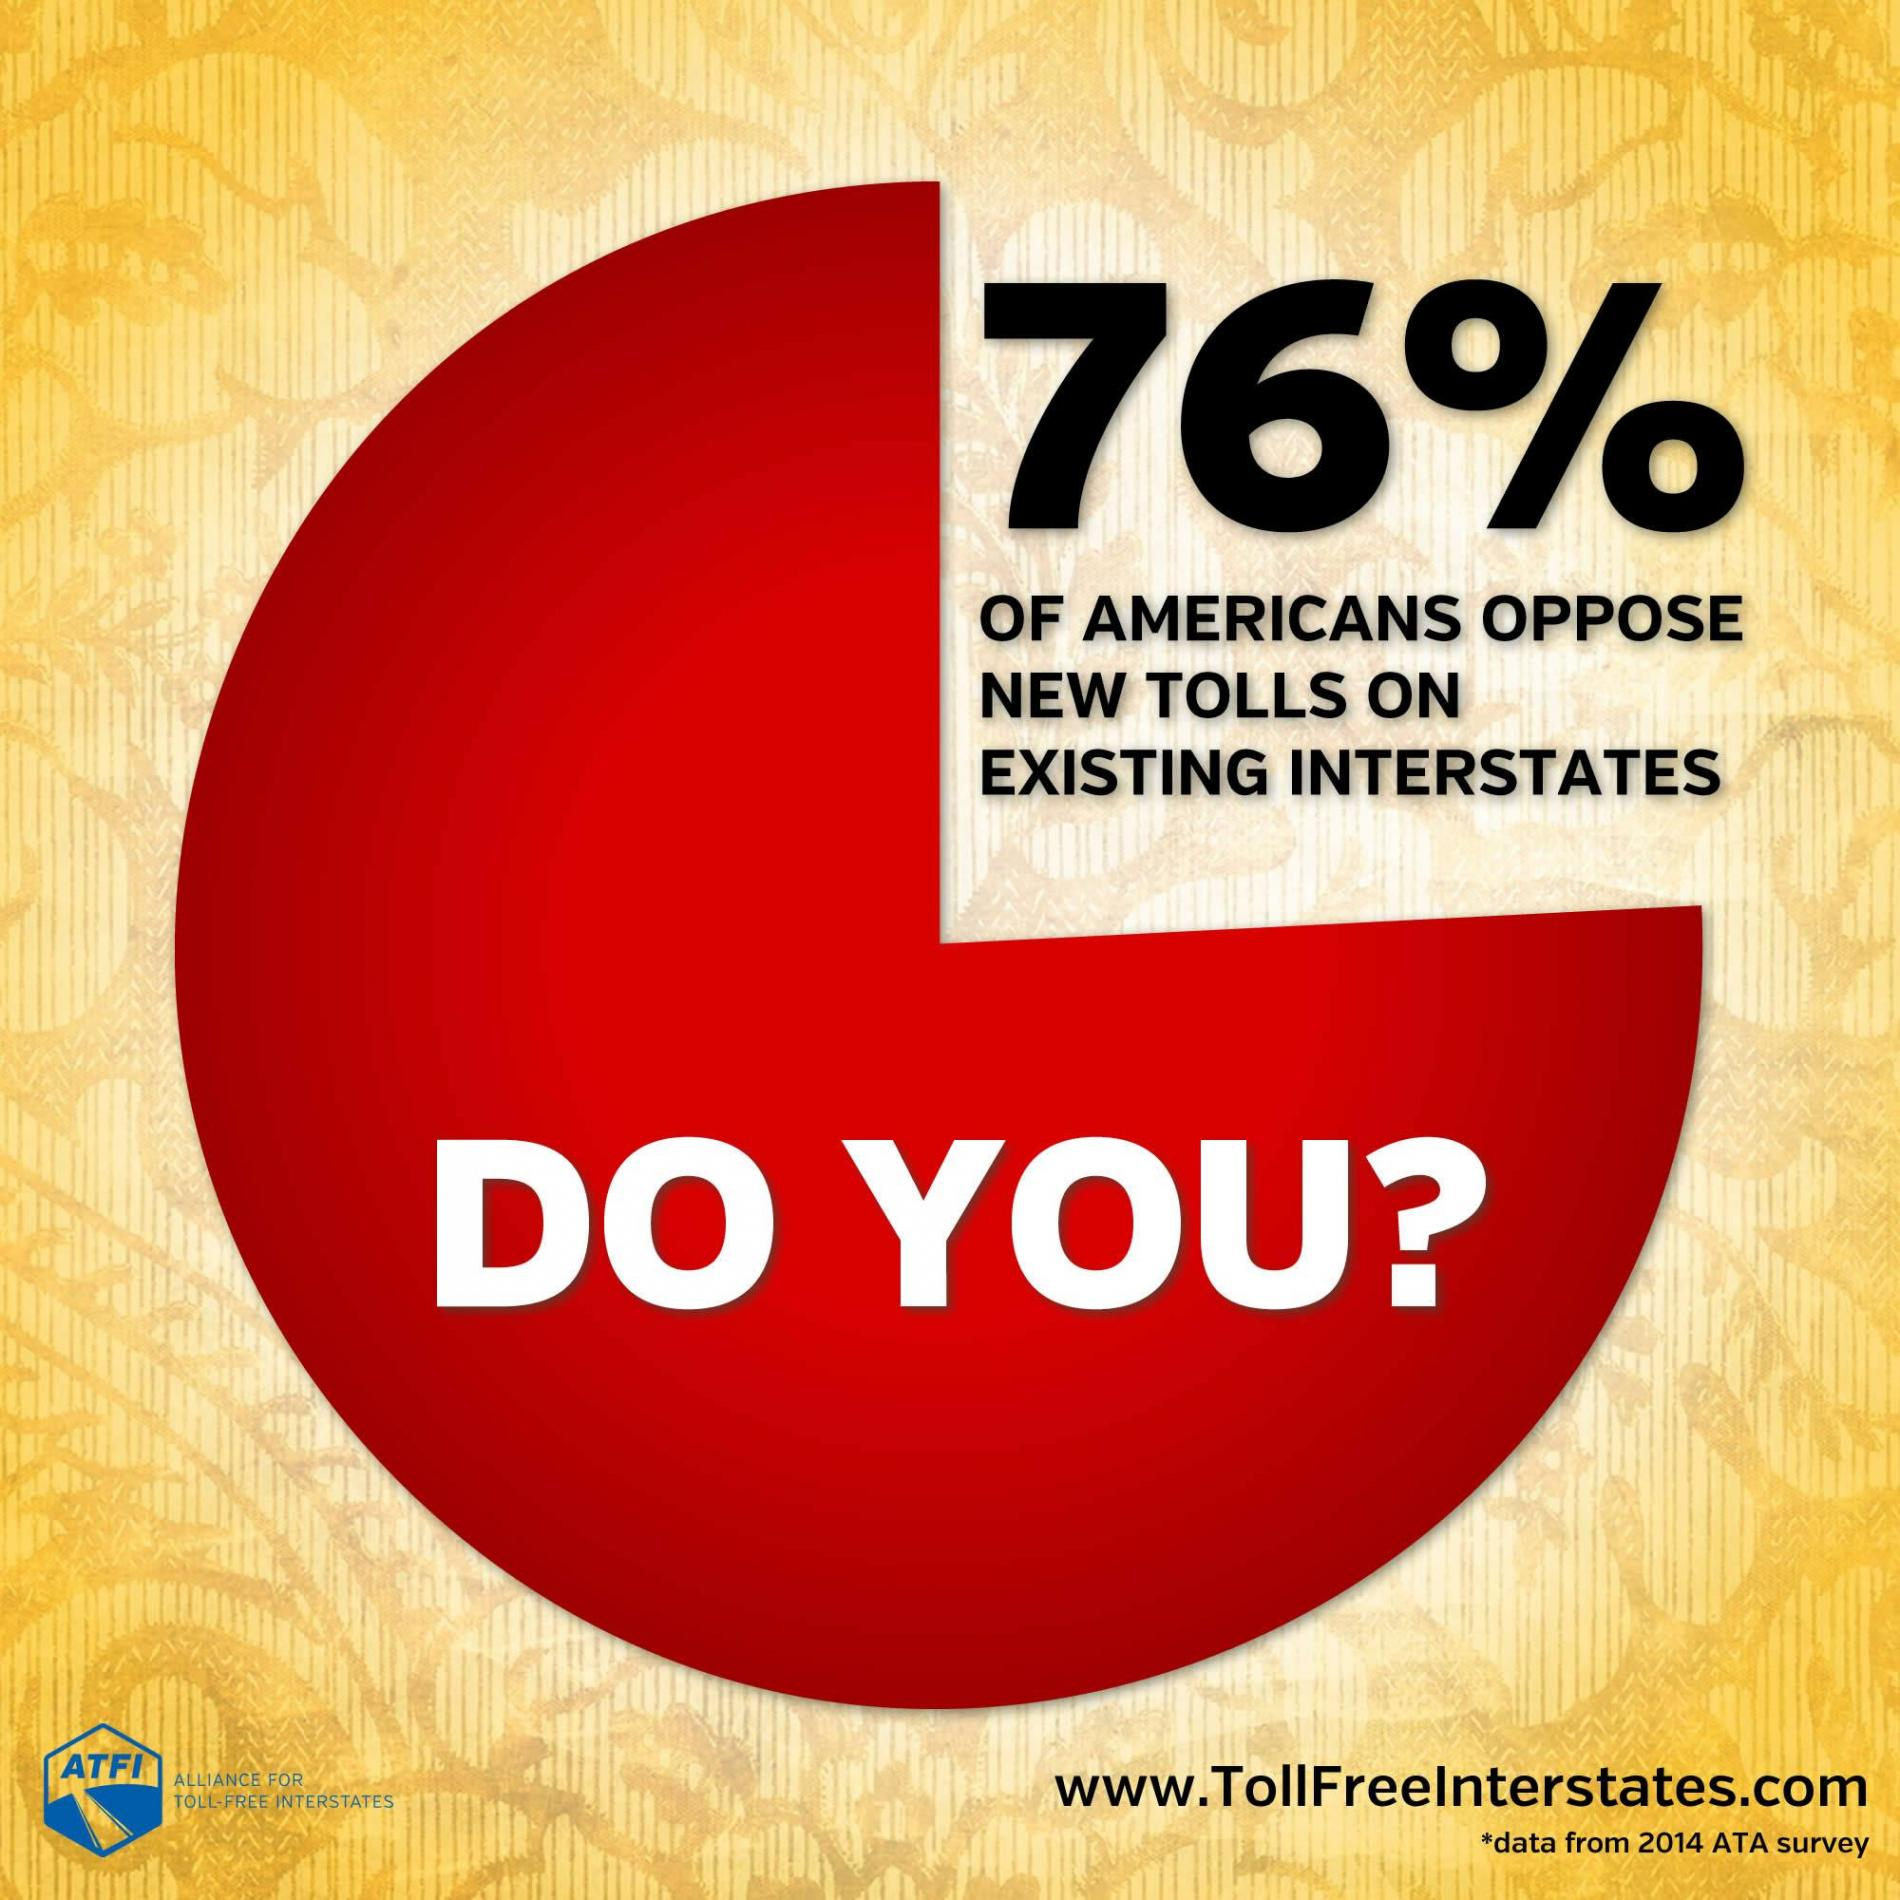 76% of Americans oppose new tolls on existing interestates